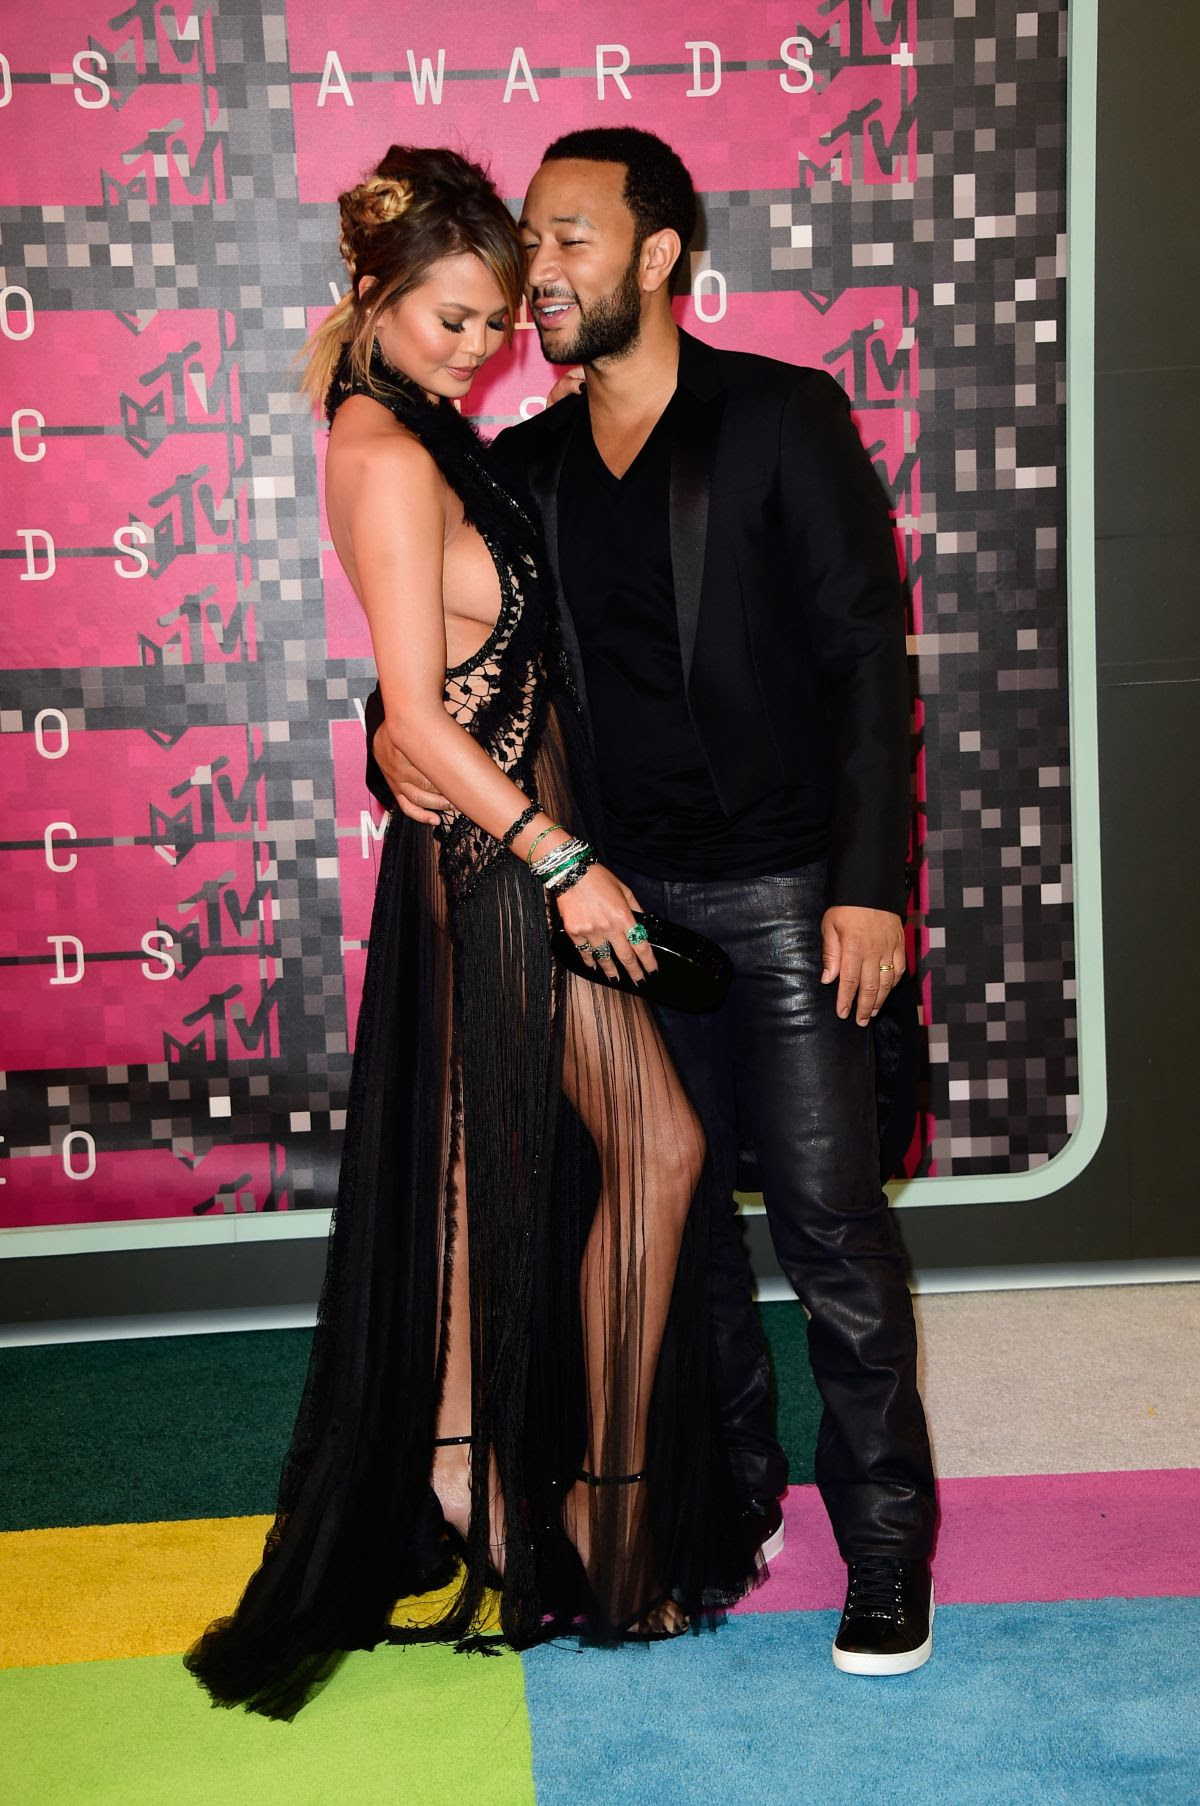 http://www.celebzz.com/wp-content/uploads/2015/08/chrissy-teigen-at-2015-mtv-video-music-awards_16.jpg